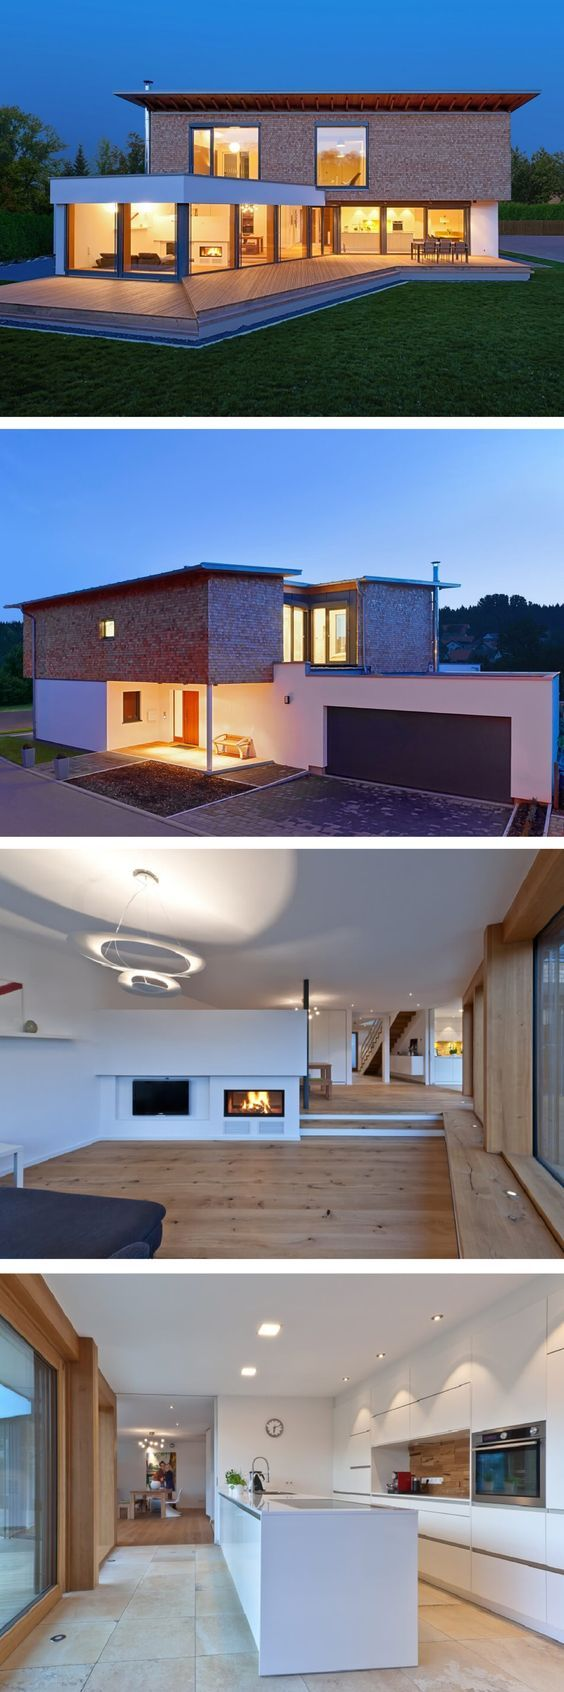 Detached house modern with garage & pent roof Archi …